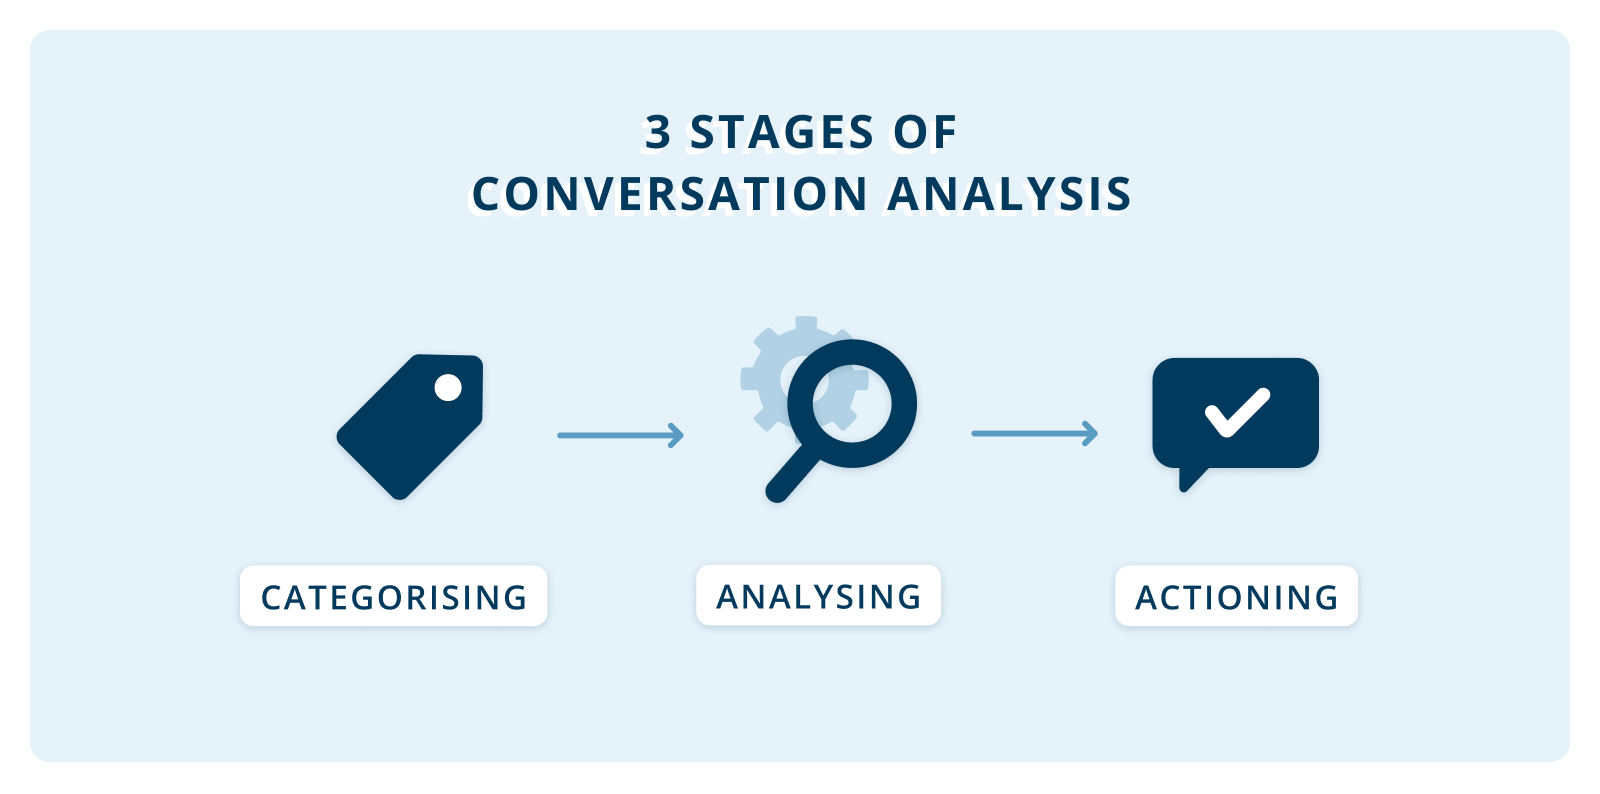 conversation analysis stages text analysis conversational ai pure speech technology intent manager